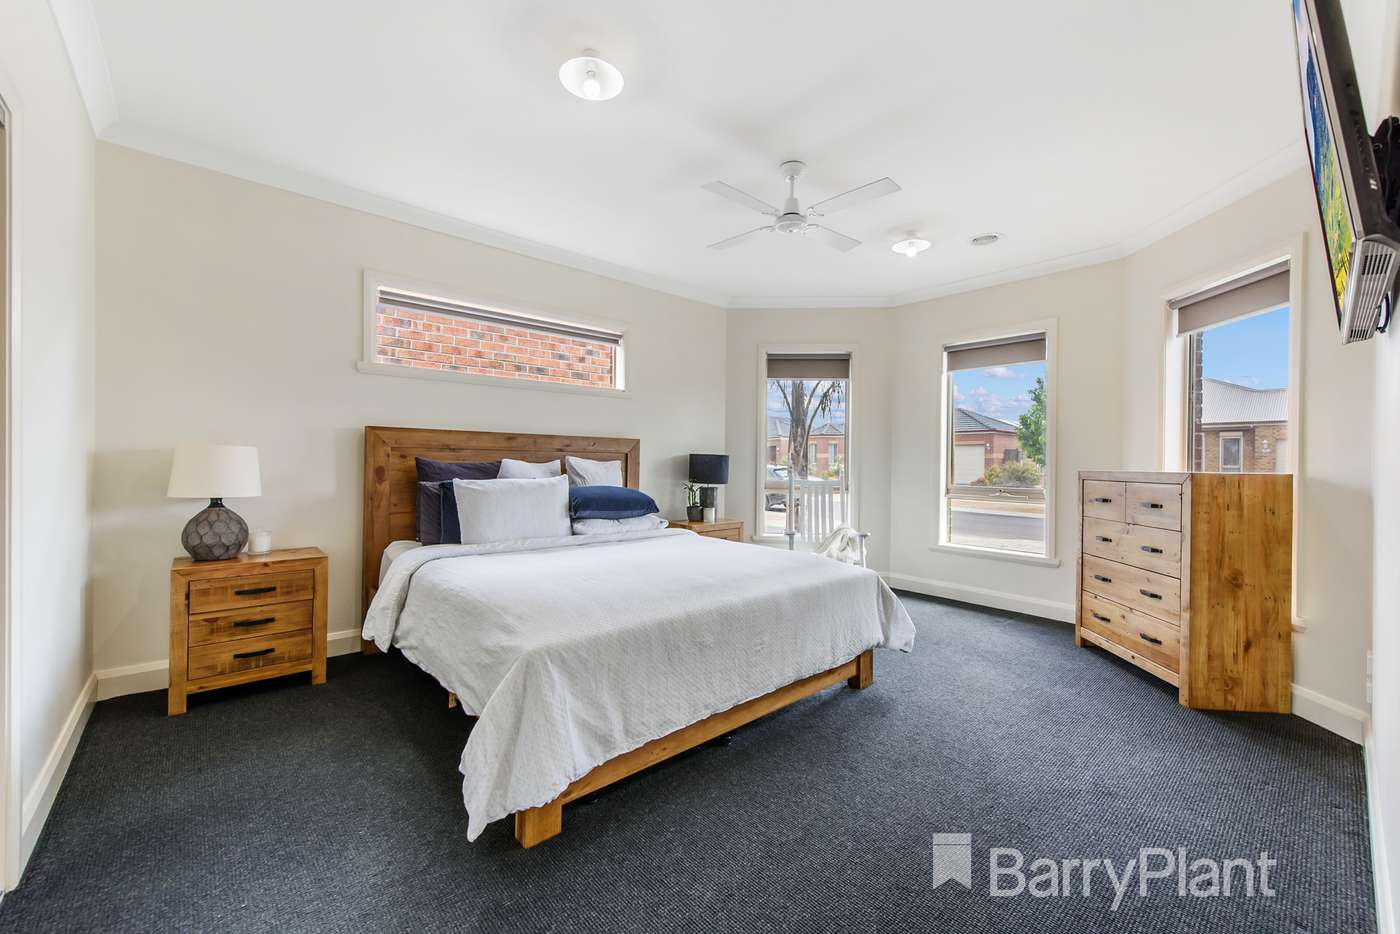 Sixth view of Homely house listing, 17 Chanticleer Avenue, Harkness VIC 3337